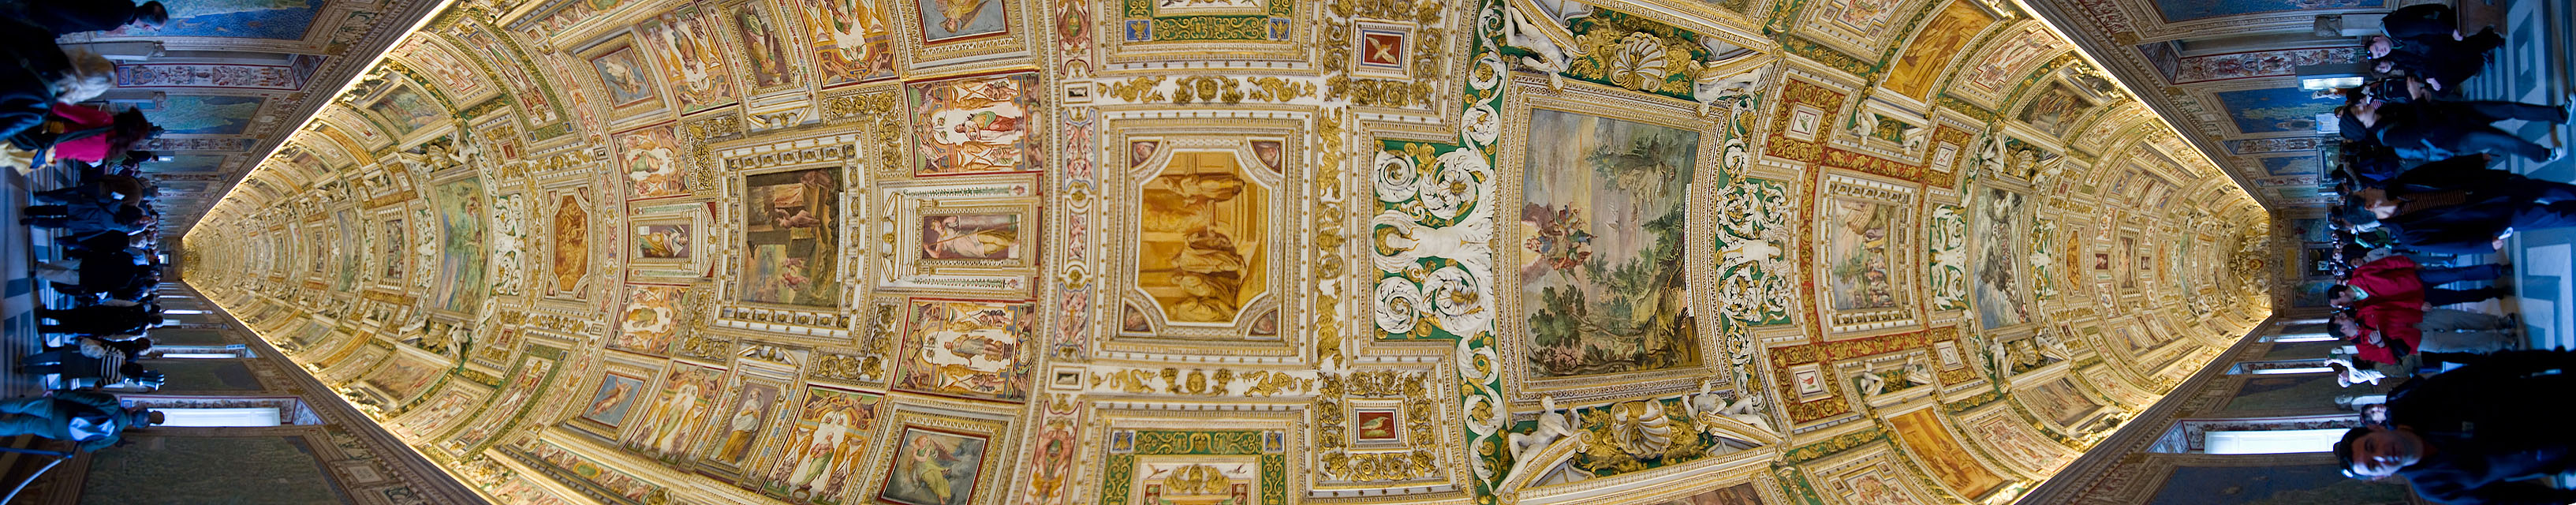 Ceiling of the Galleria delle Carte Geografiche at the Vaticans museums